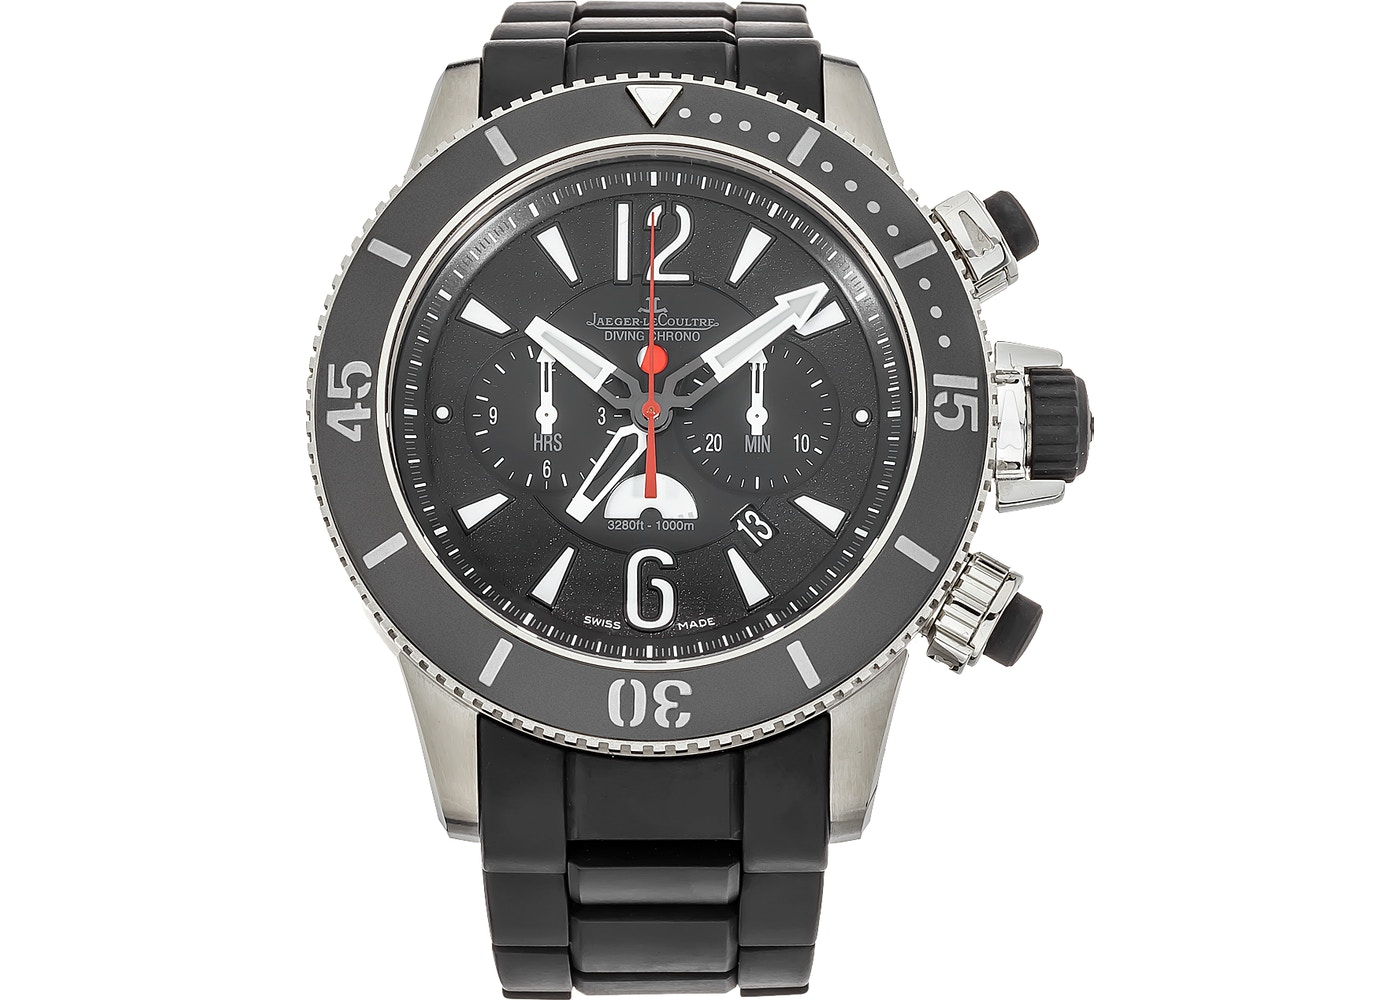 Jaeger-LeCoultre Master Compressor Diving Chronograph GMT